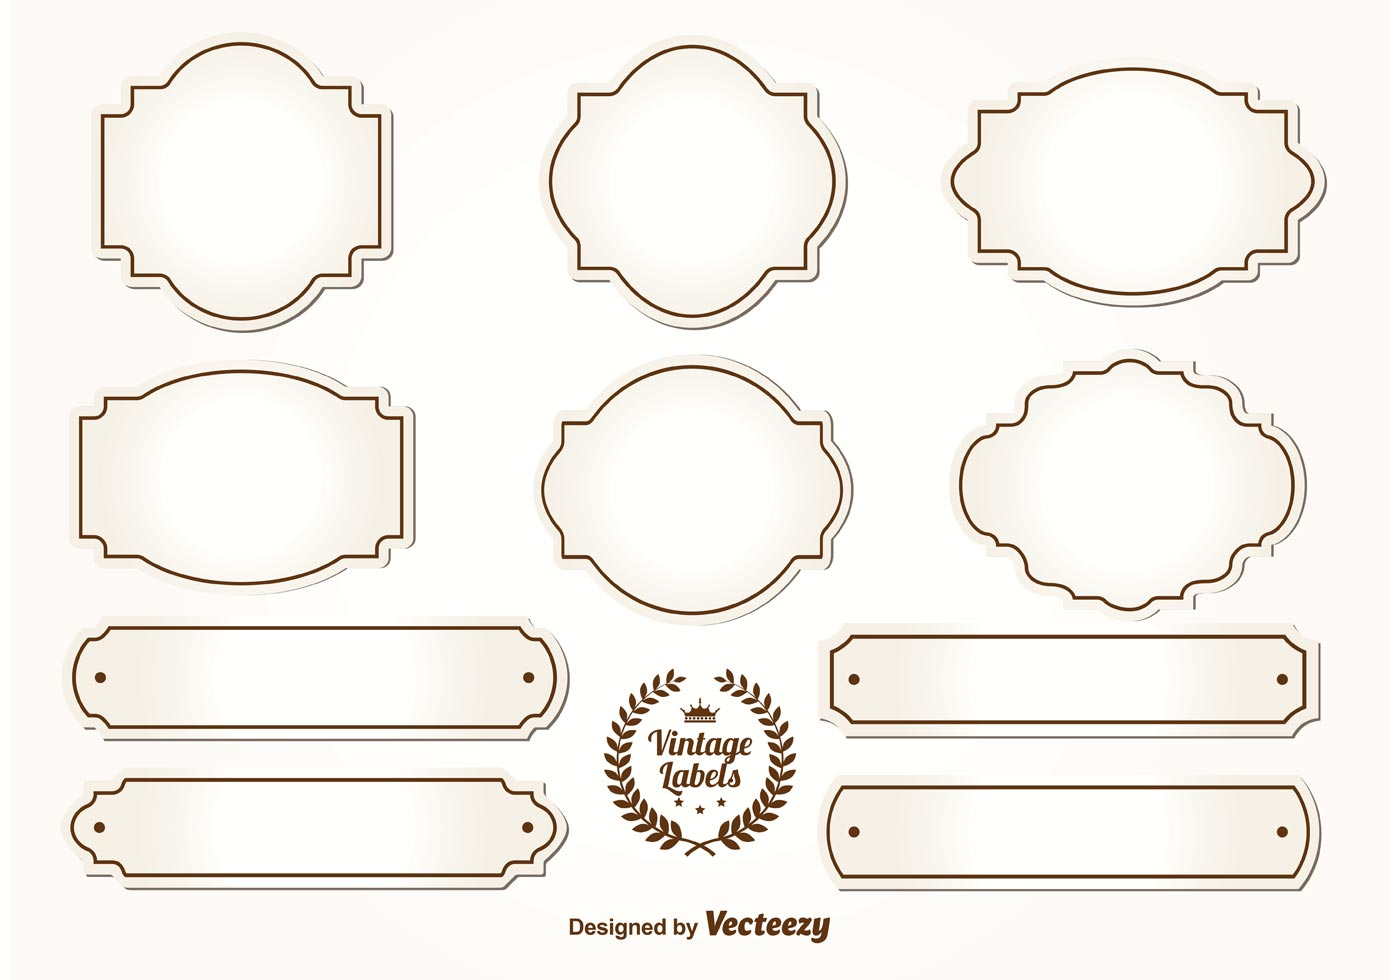 Vintage Label Free Vector Art - (17738 Free Downloads)